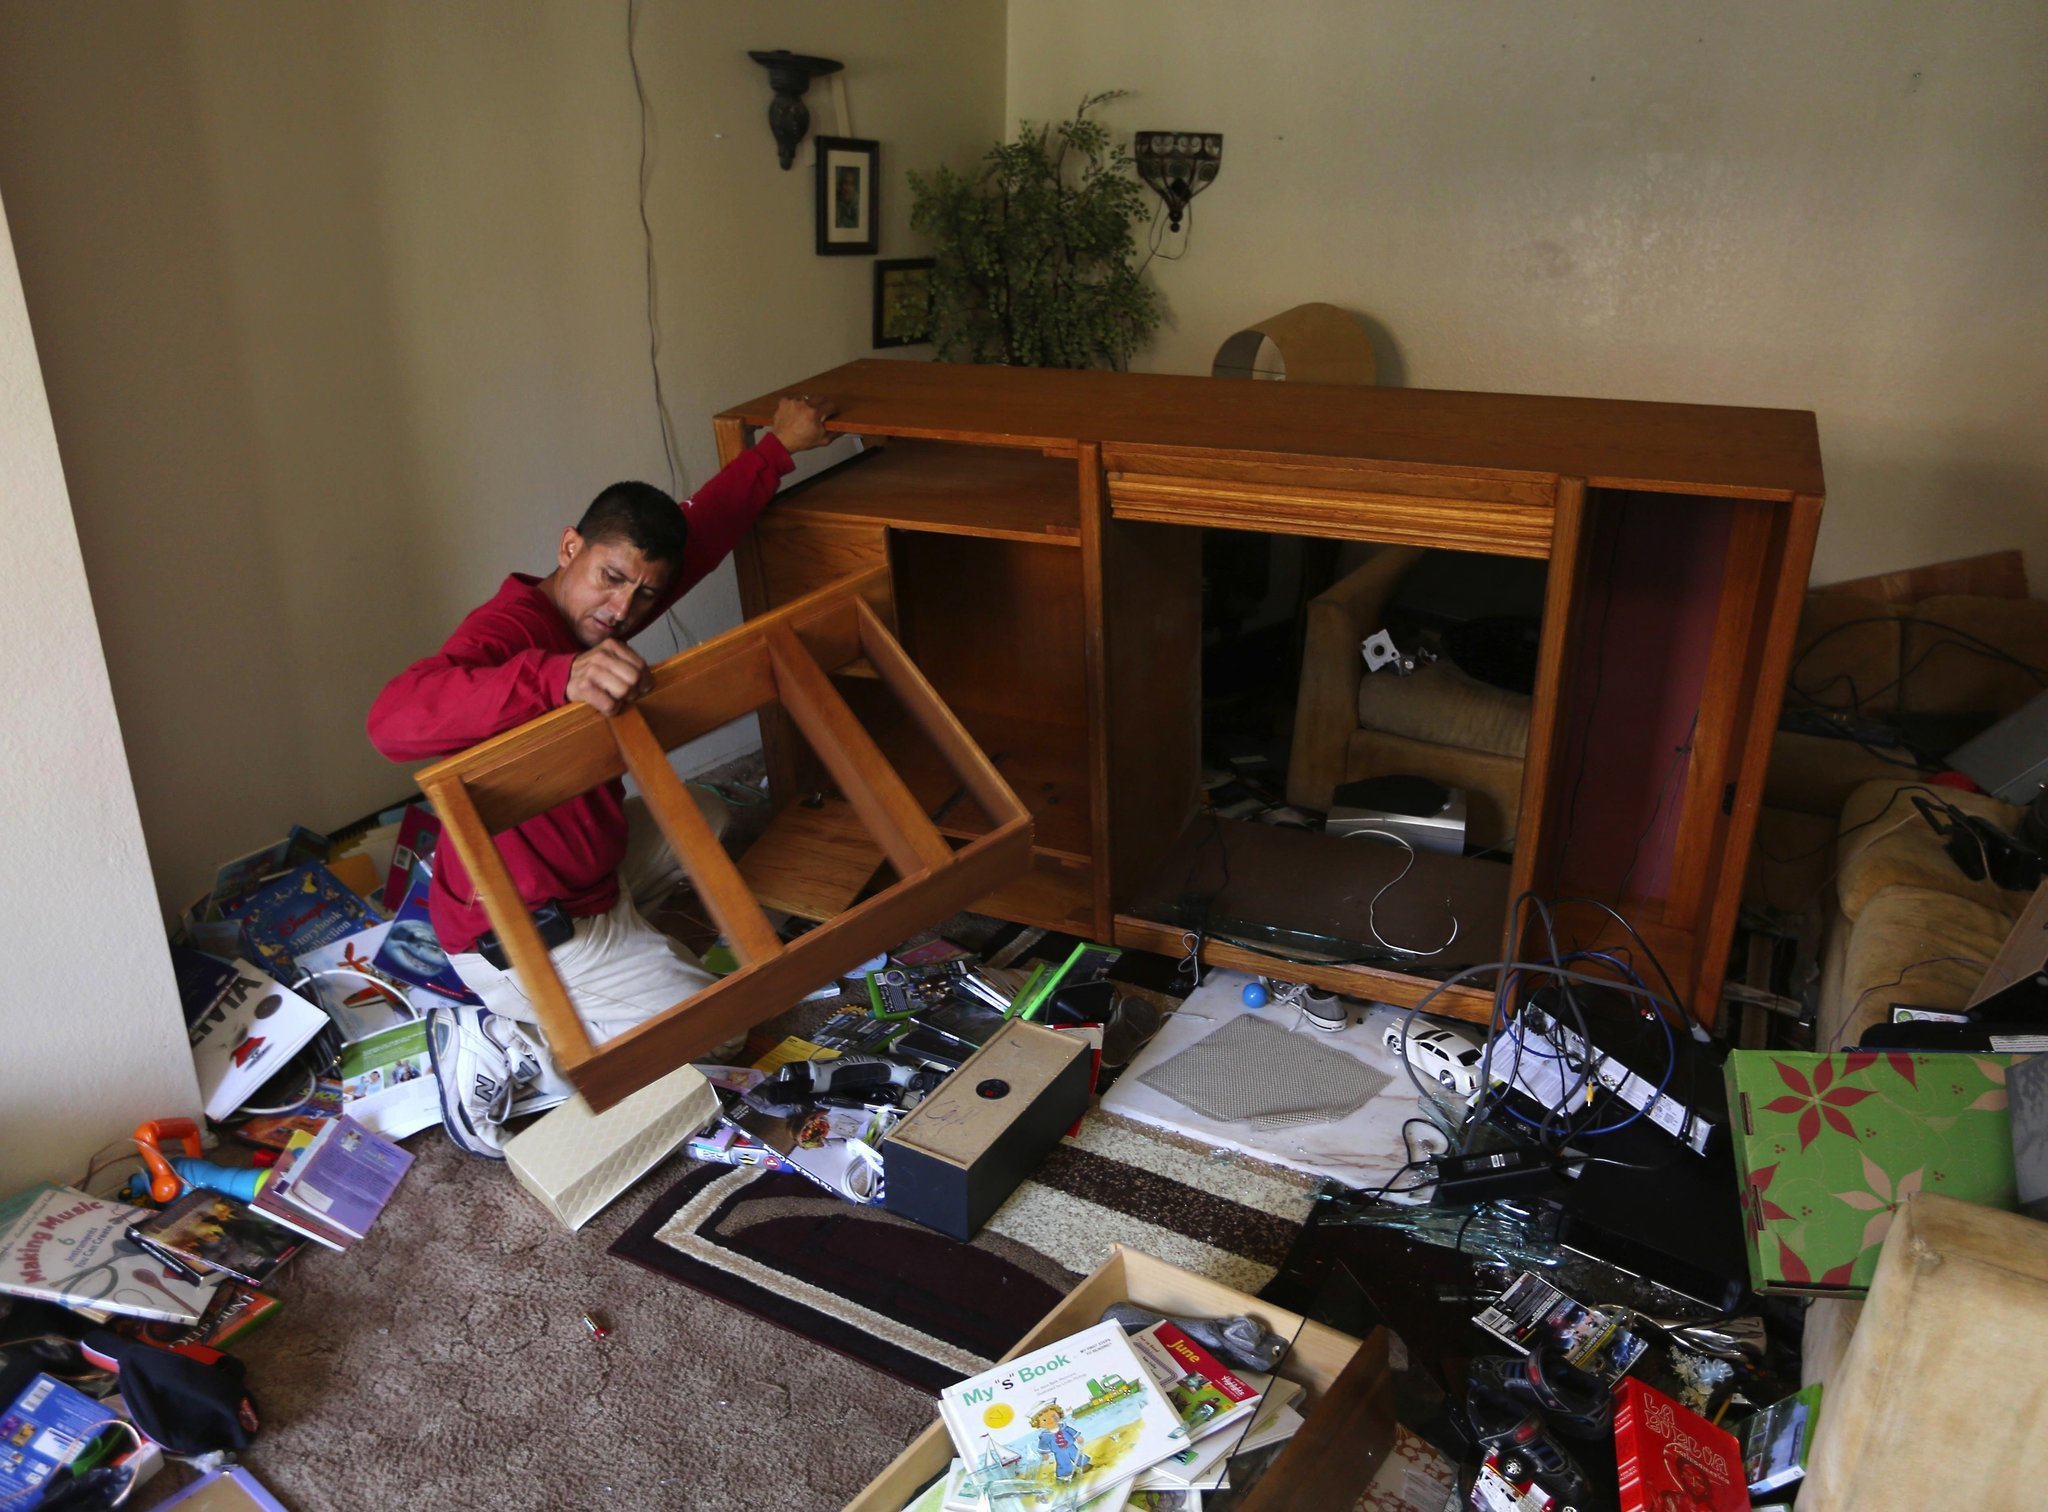 Jamie Gudino cleans up the damage from an early morning earthquake in Napa, Calif., on Aug. 24, 2014,